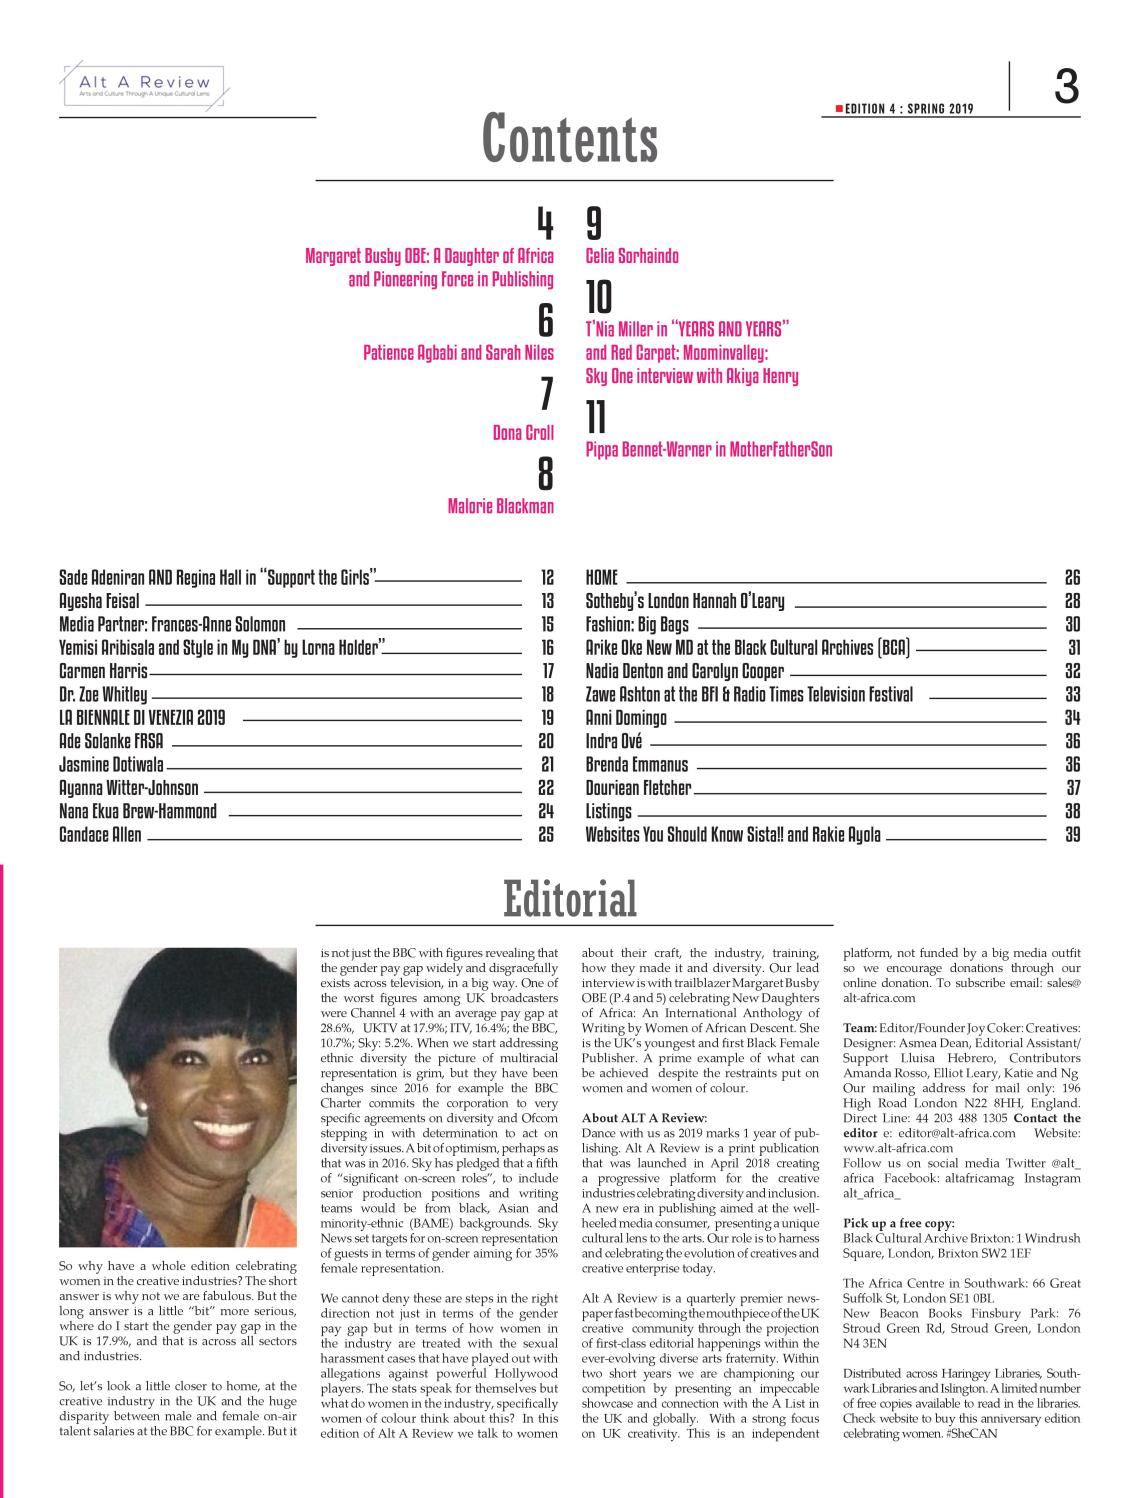 Alt A Review Spring Contents Page 2019